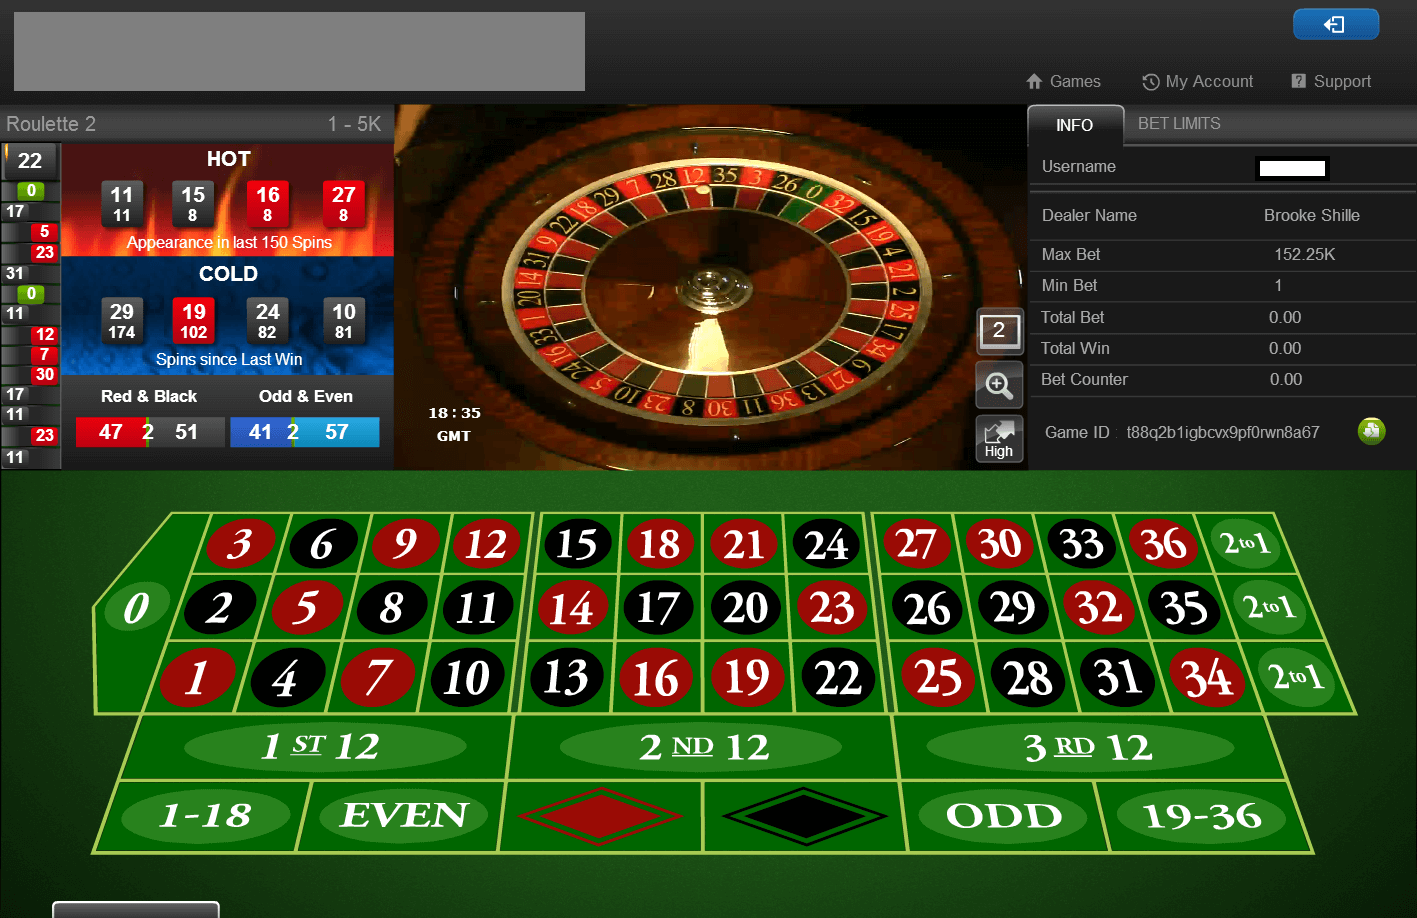 American Roulette Betting